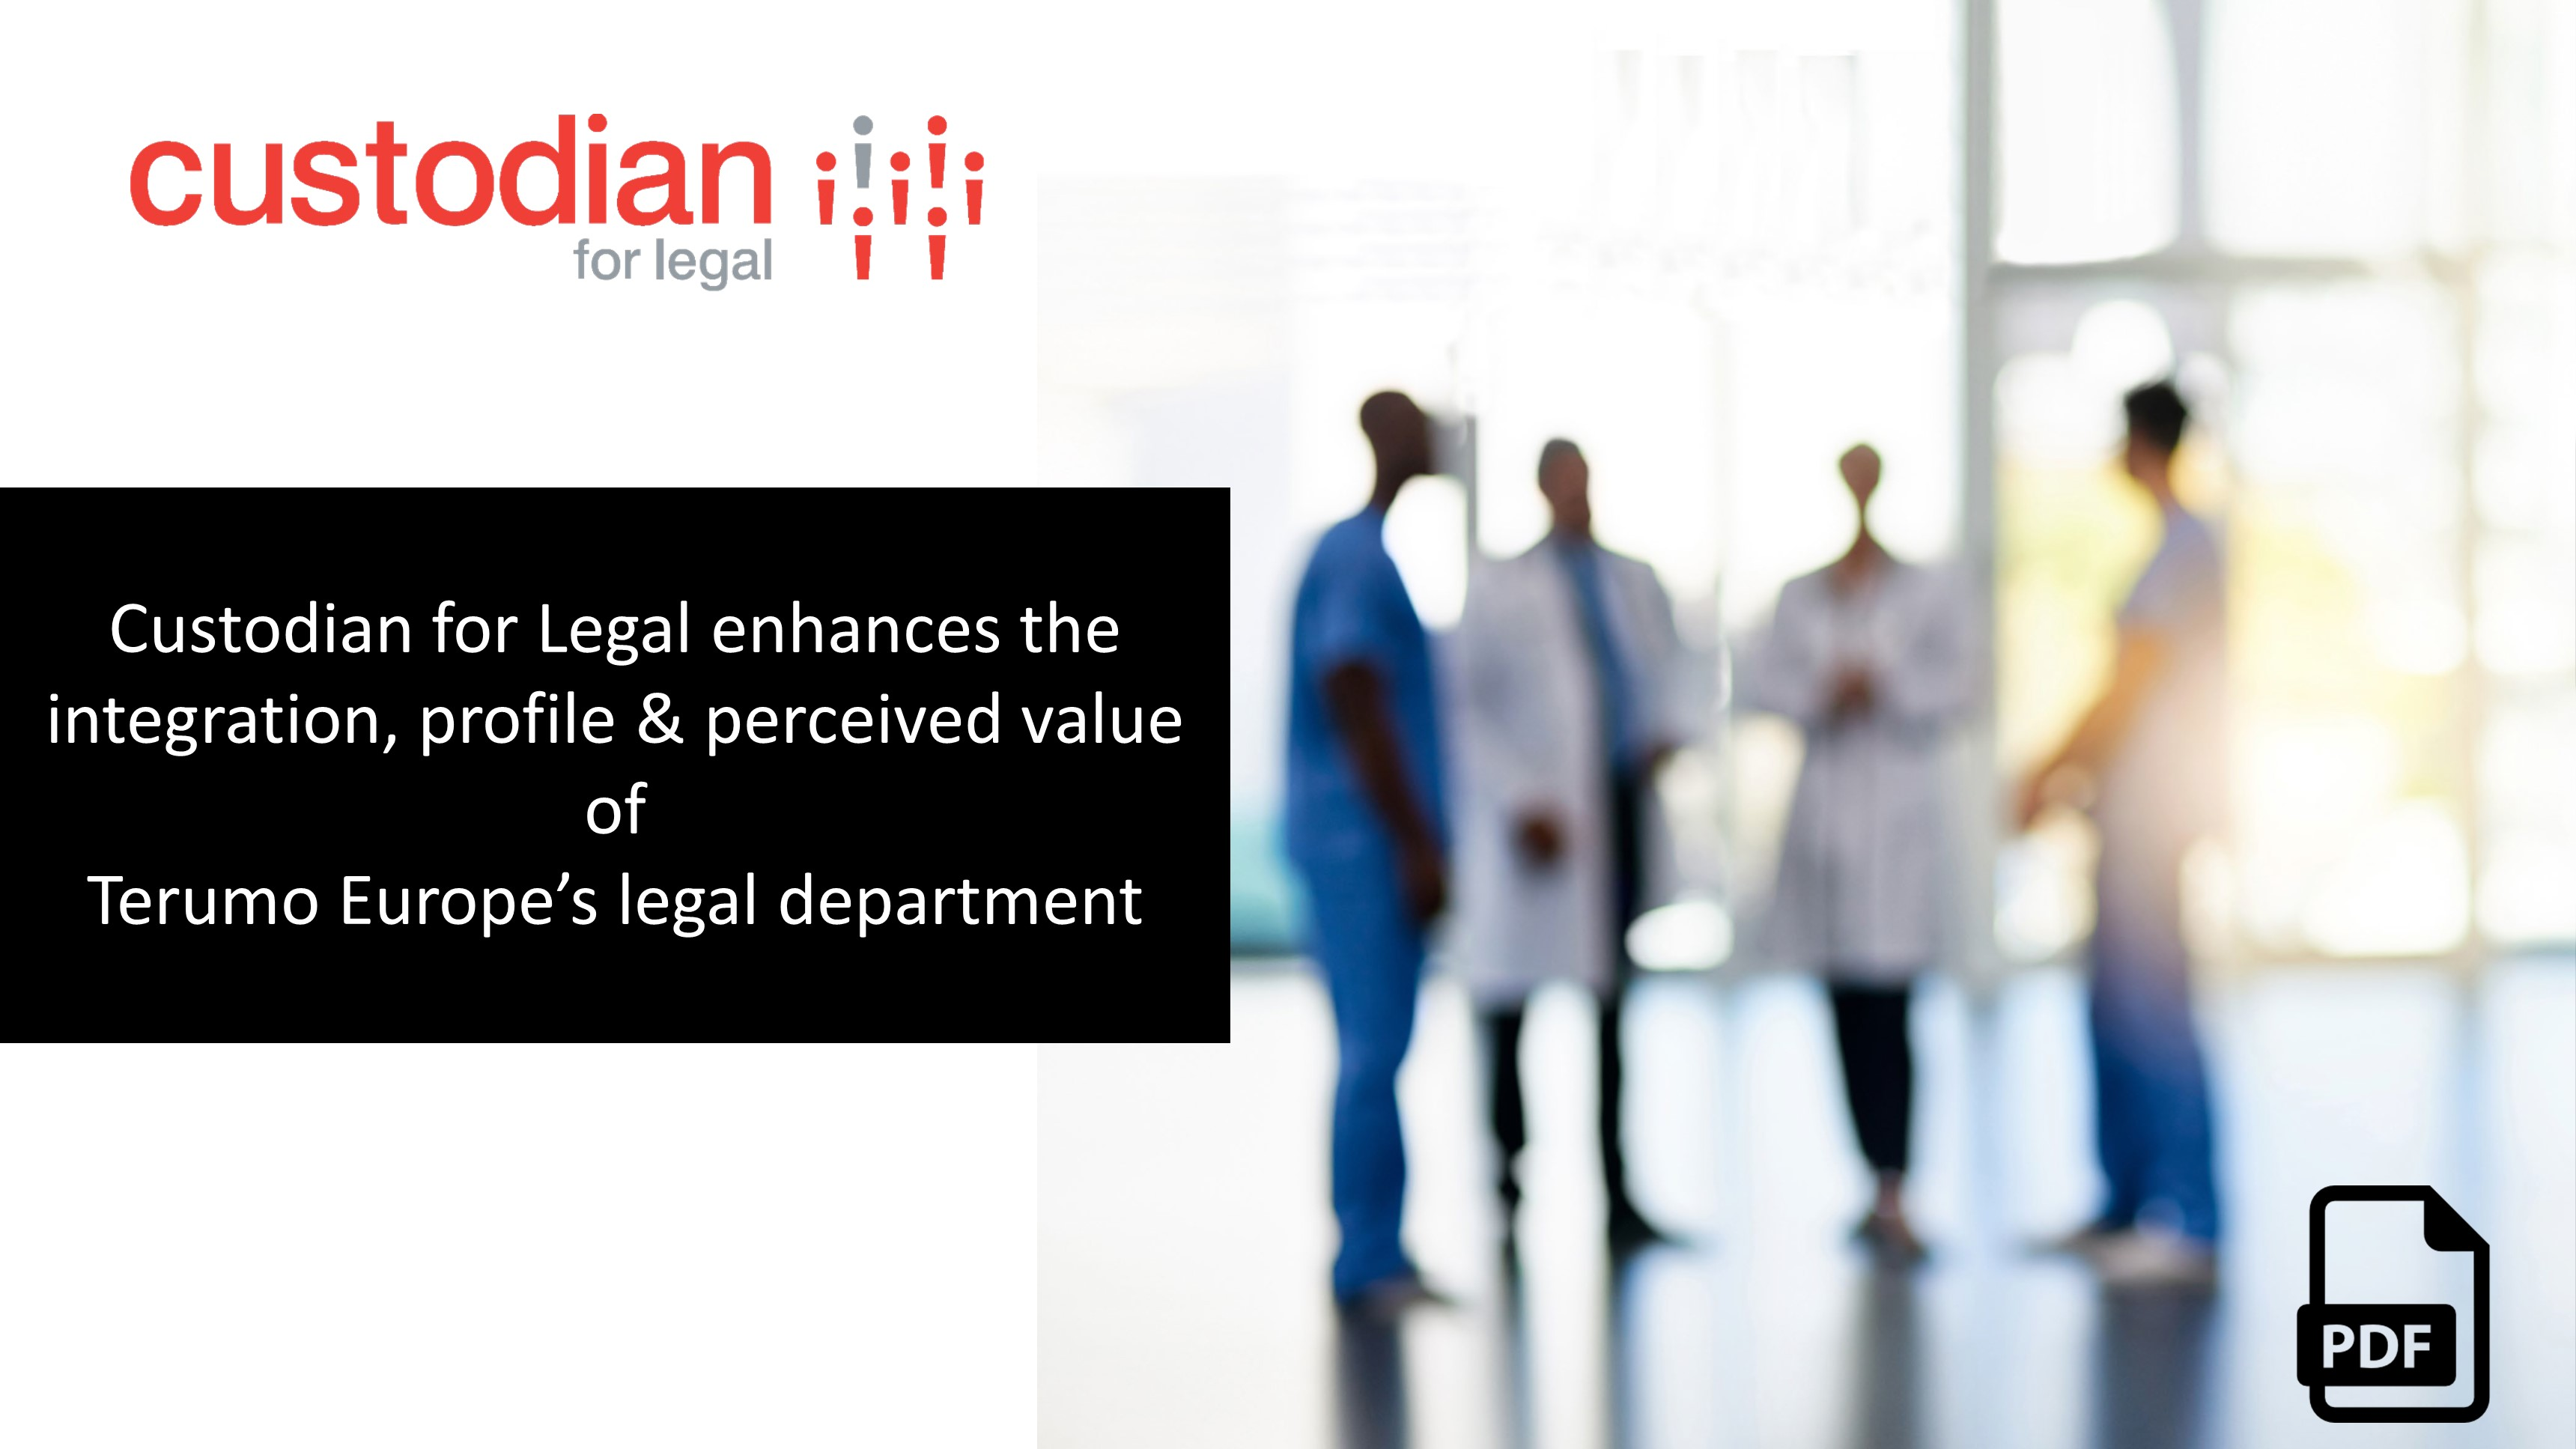 Custodian-for-Legal-enhances-the-integration-profile-and-perceived-value-of-Terumo-Europe-legal-department